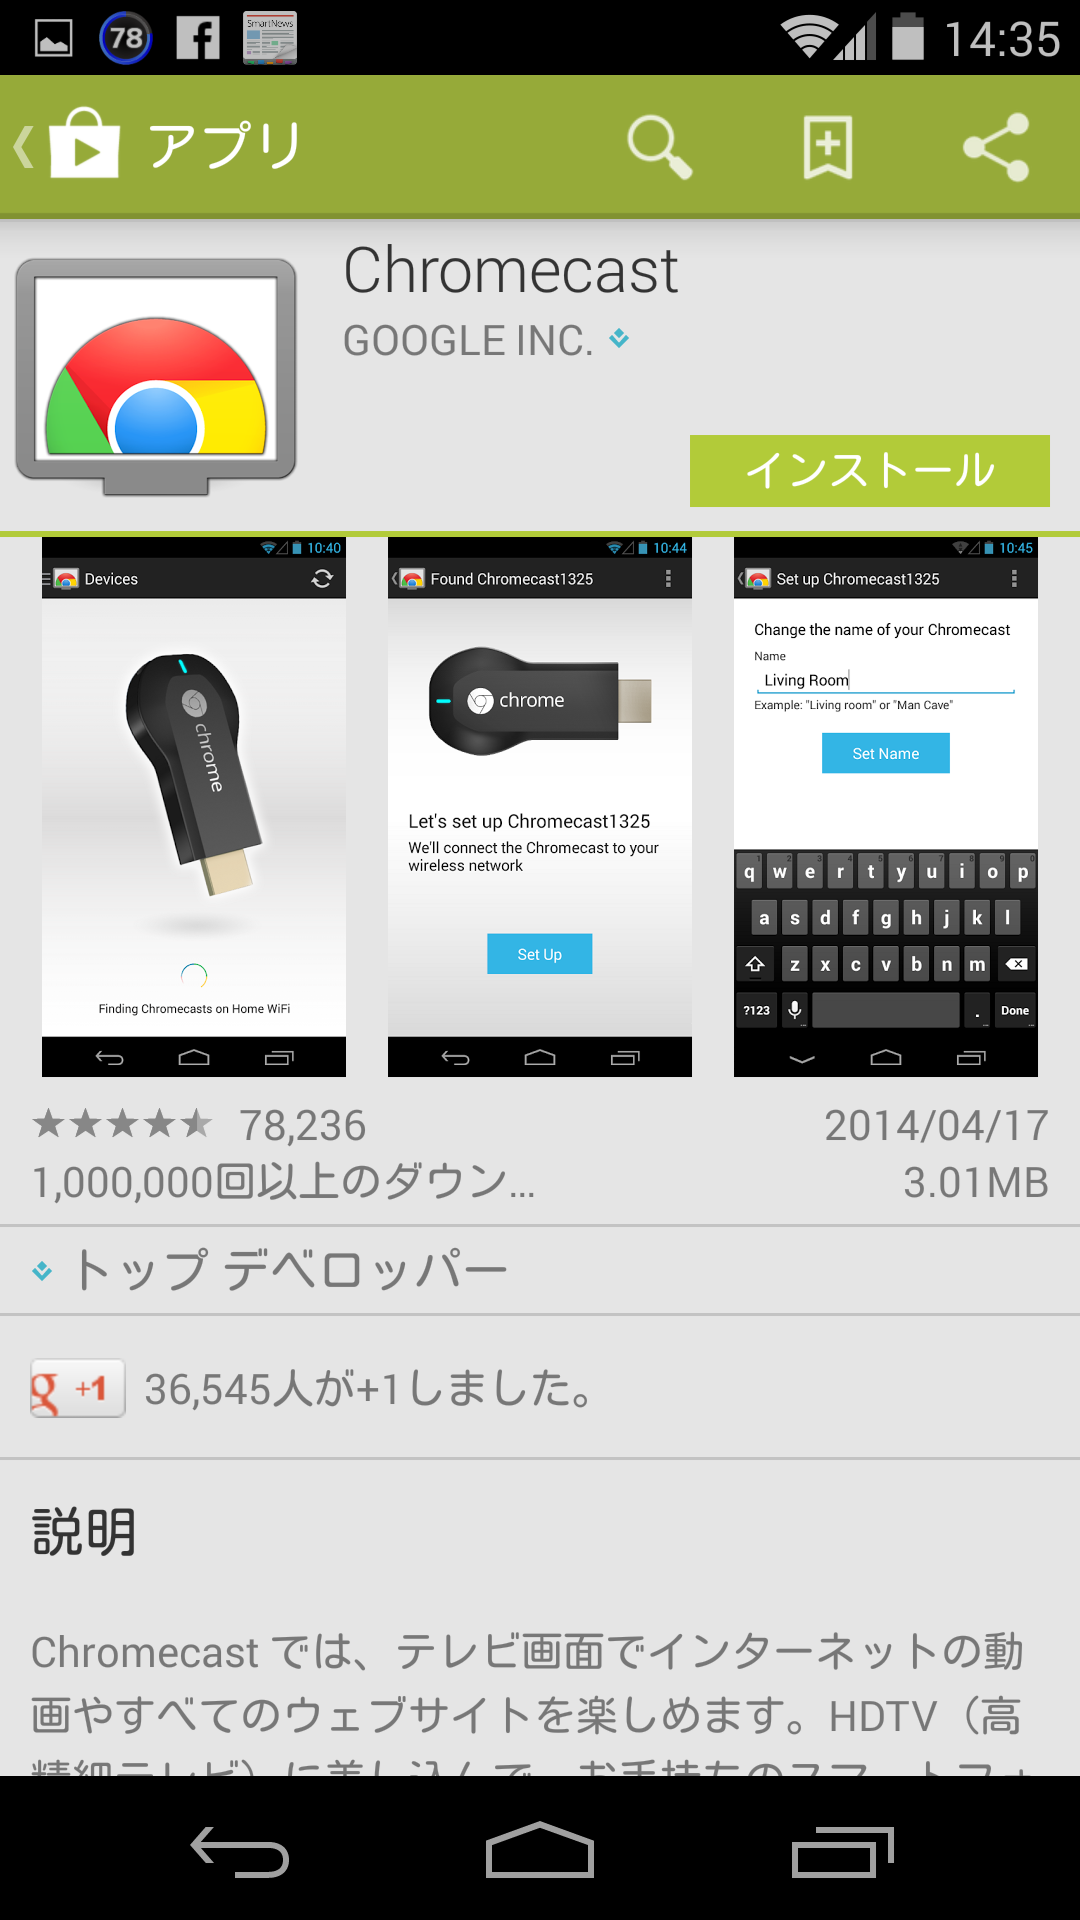 chromecast seuup app